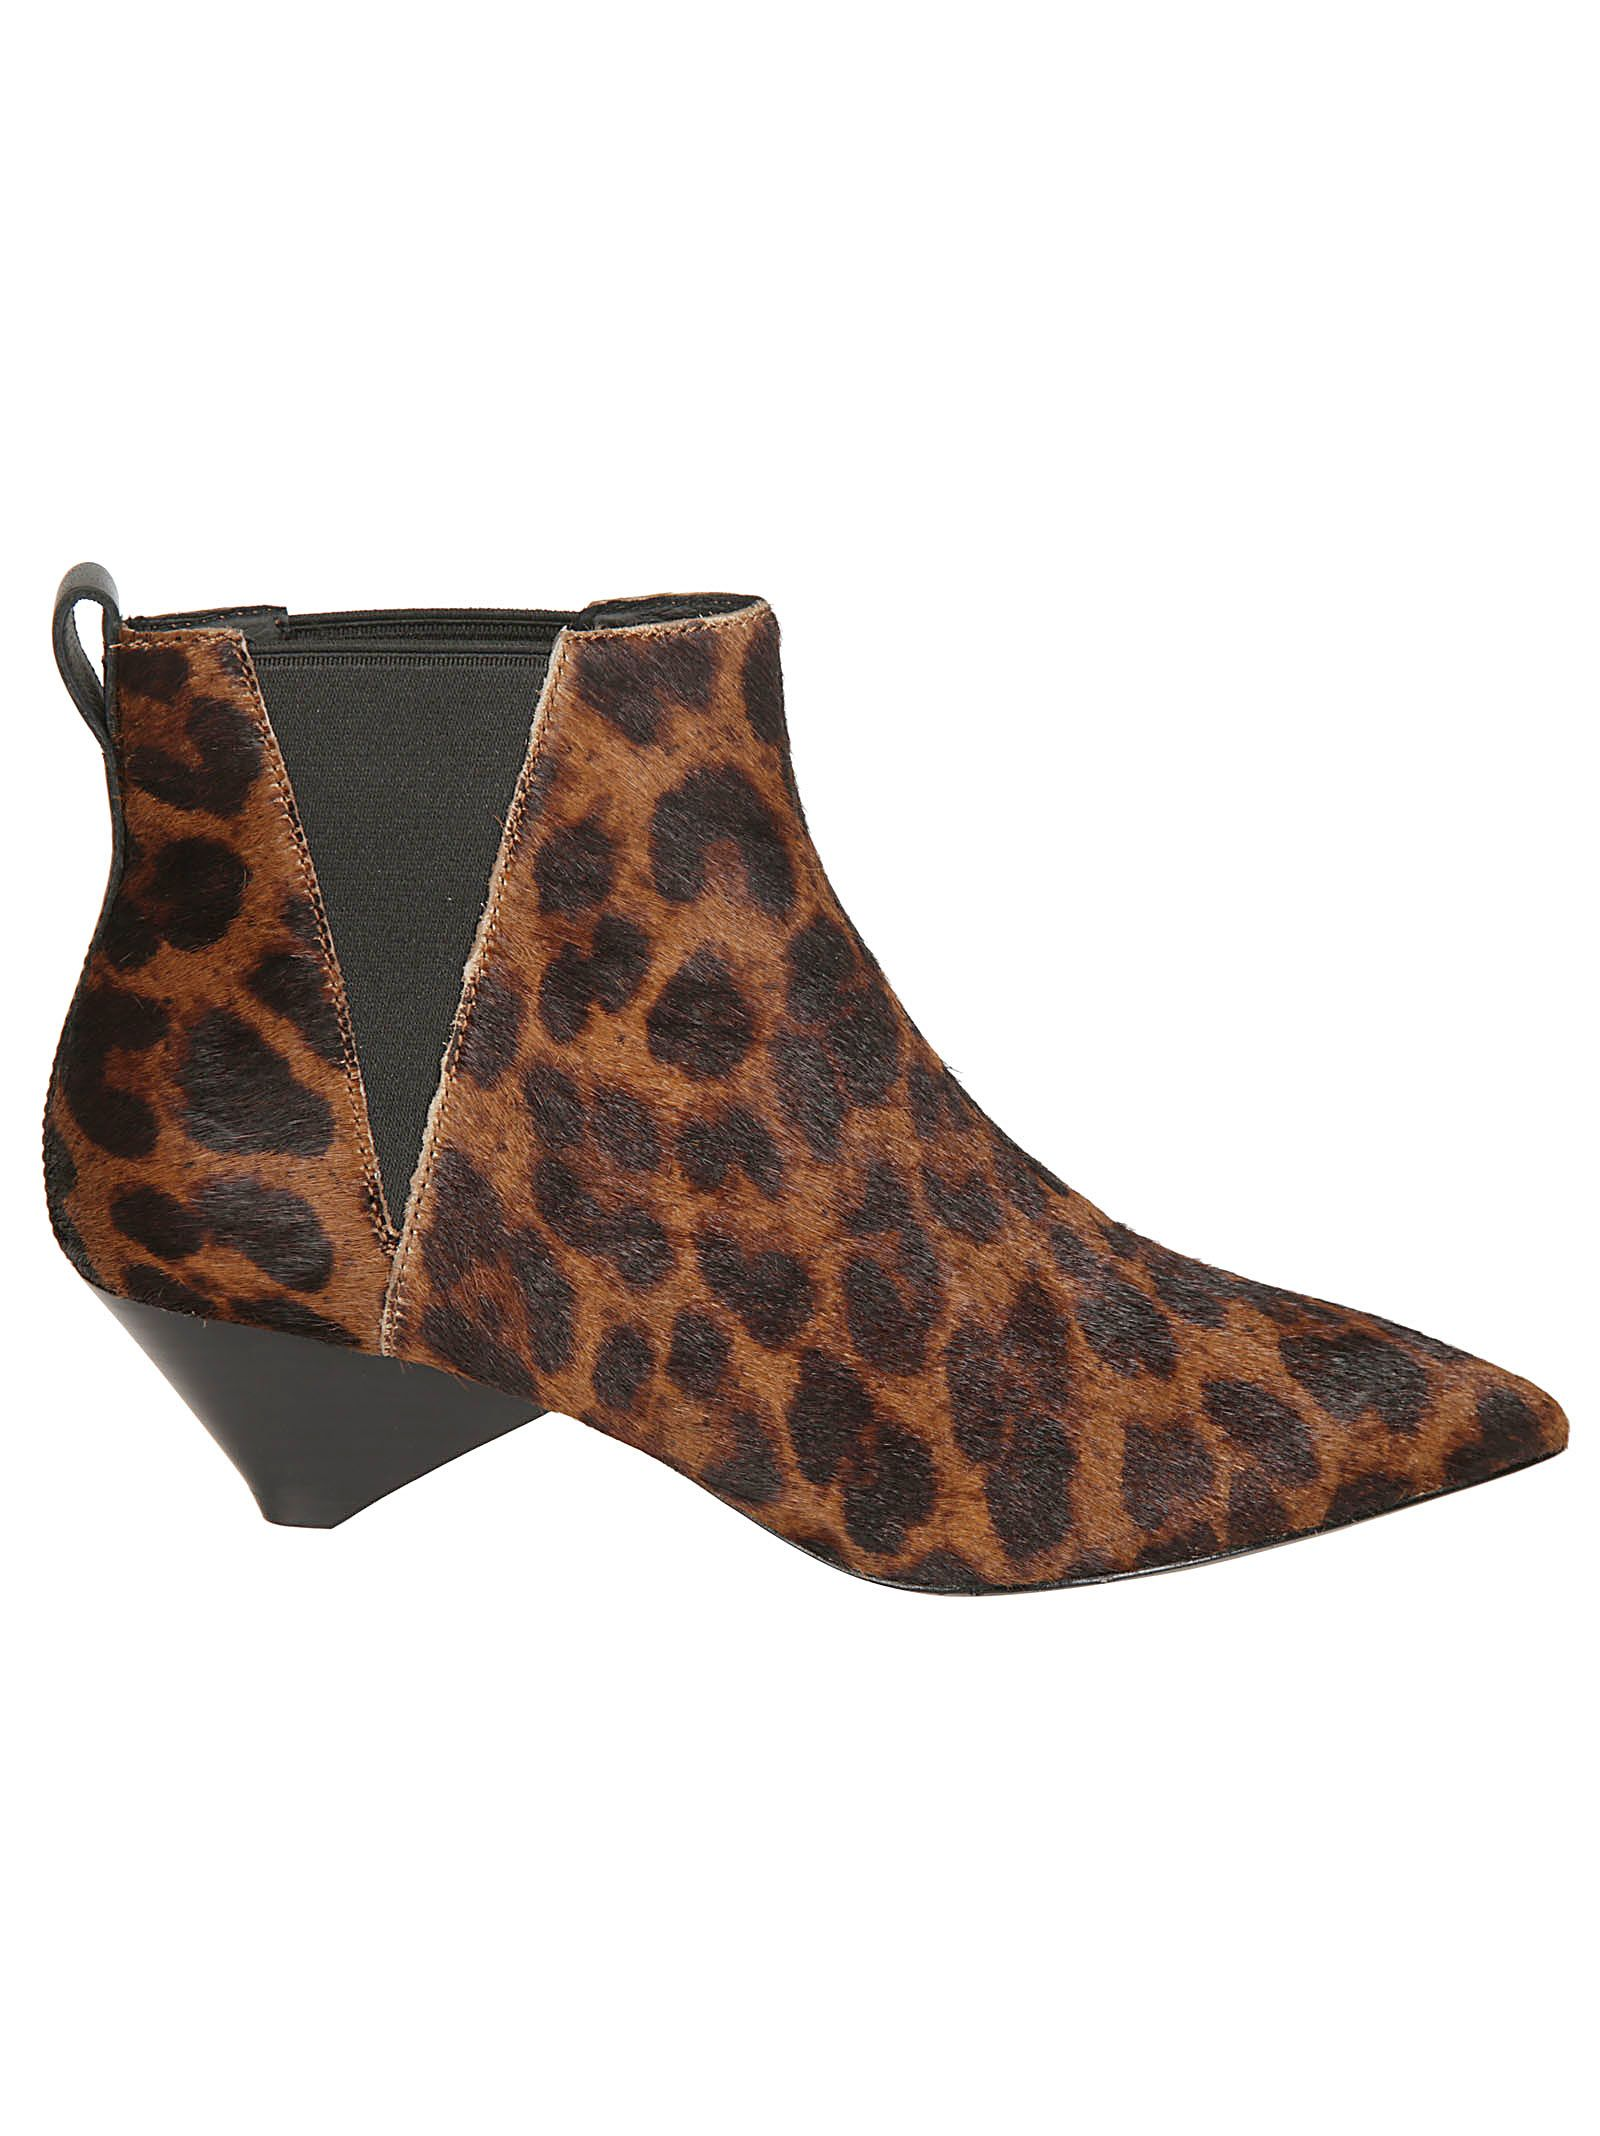 ASH Cosmos Pony Africa Ankle Boots in Brown